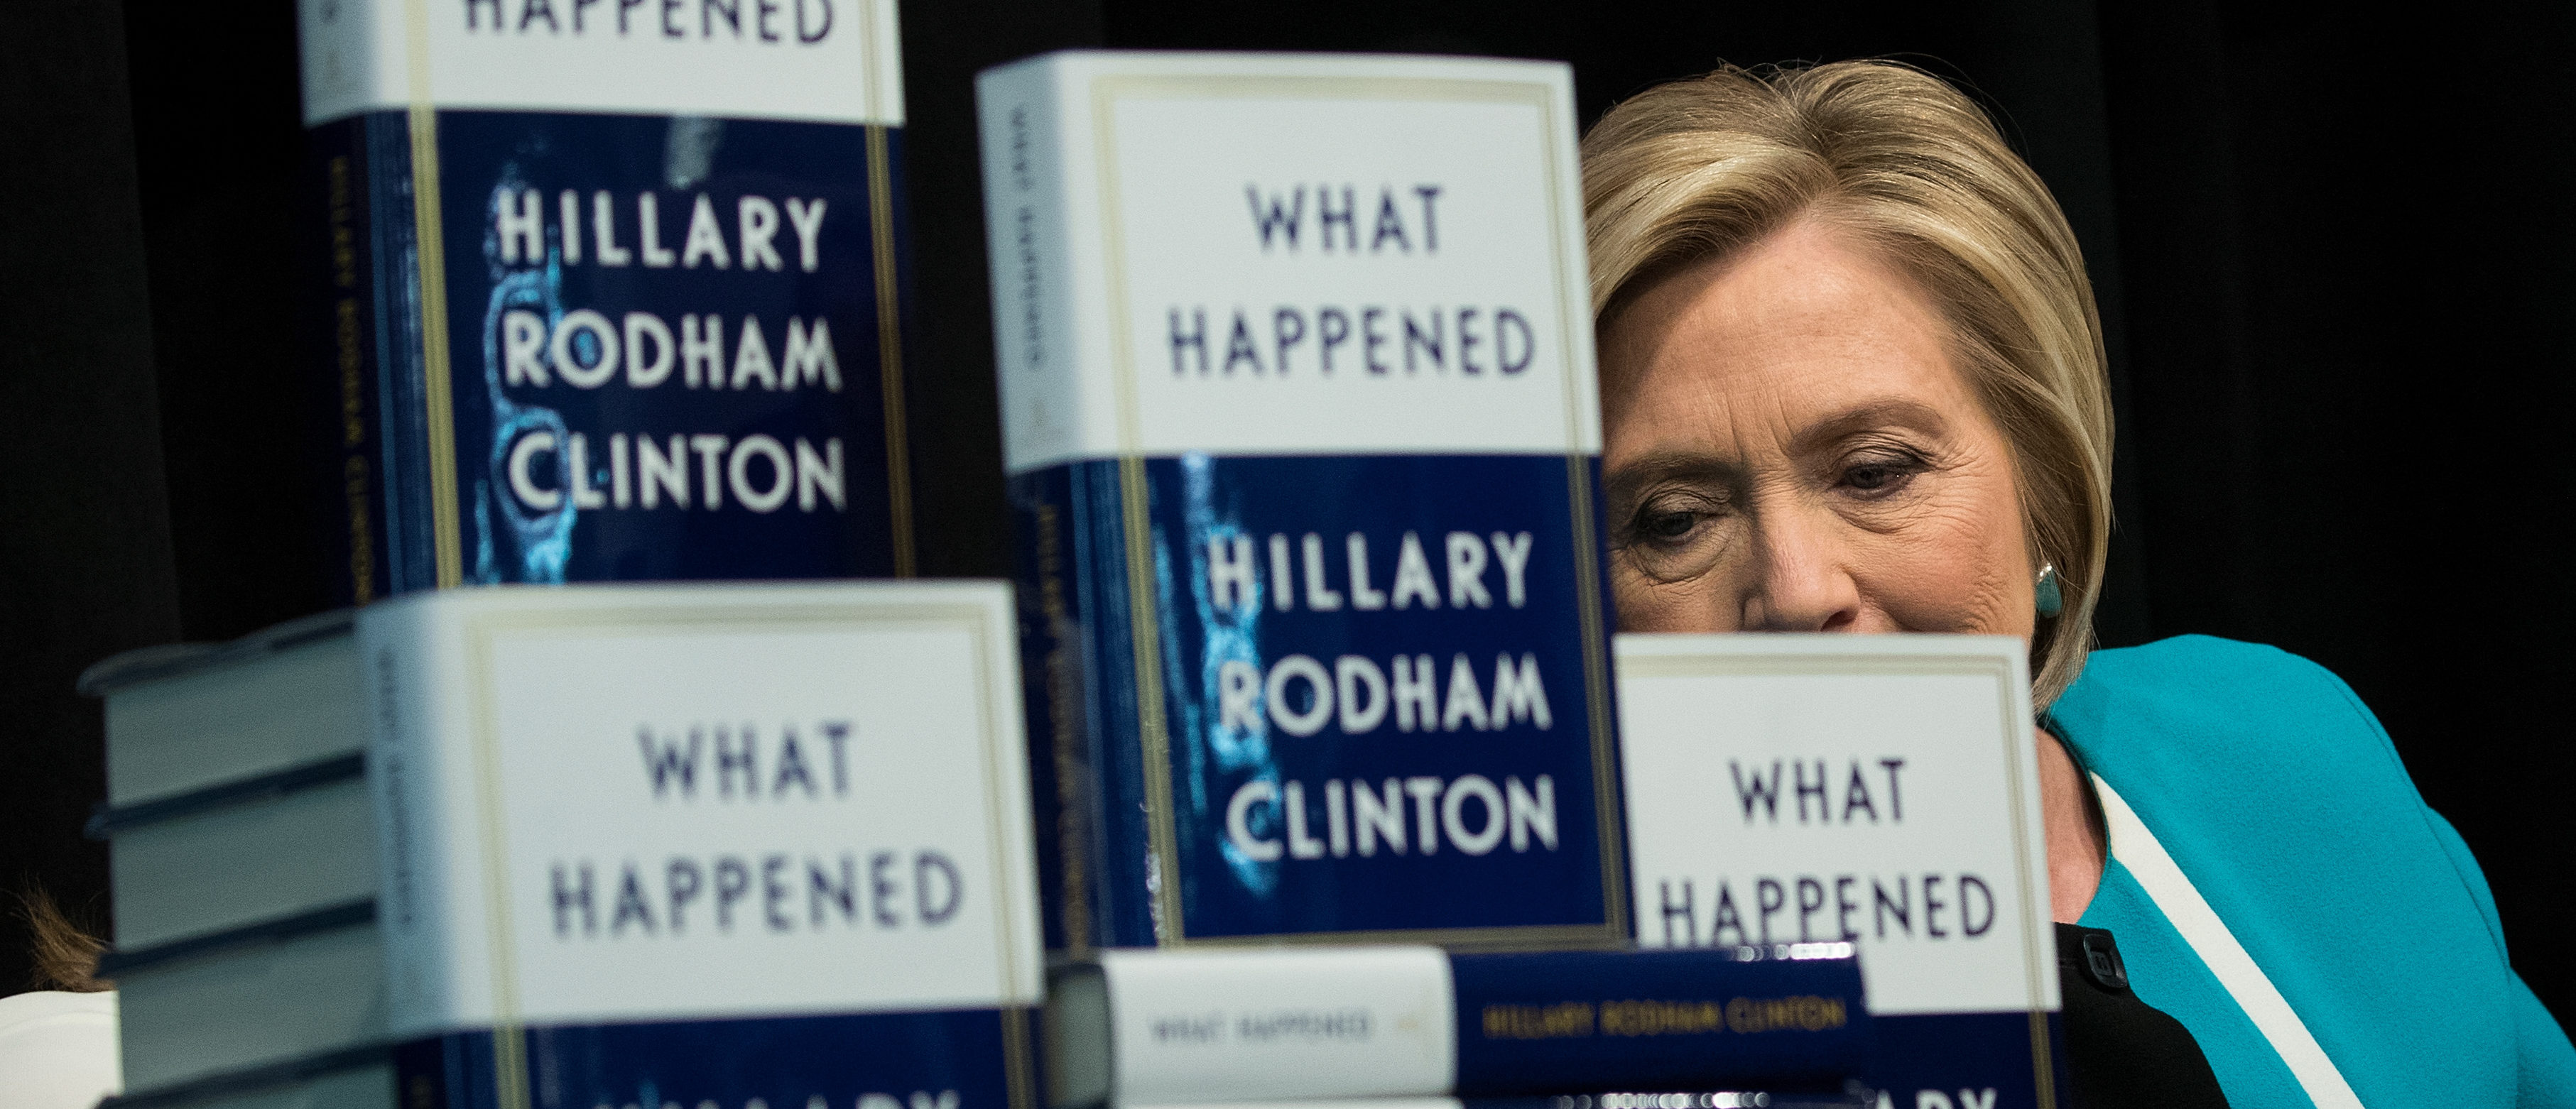 "NEW YORK, NY - SEPTEMBER 12: Former U.S. Secretary of State Hillary Clinton signs copies of her new book ""What Happened"" during a book signing event at Barnes and Noble bookstore September 12, 2017 in New York City. Clinton's book, which focuses on her 2016 election loss to President Donald Trump, goes on sale today. (Photo by Drew Angerer/Getty Images)"